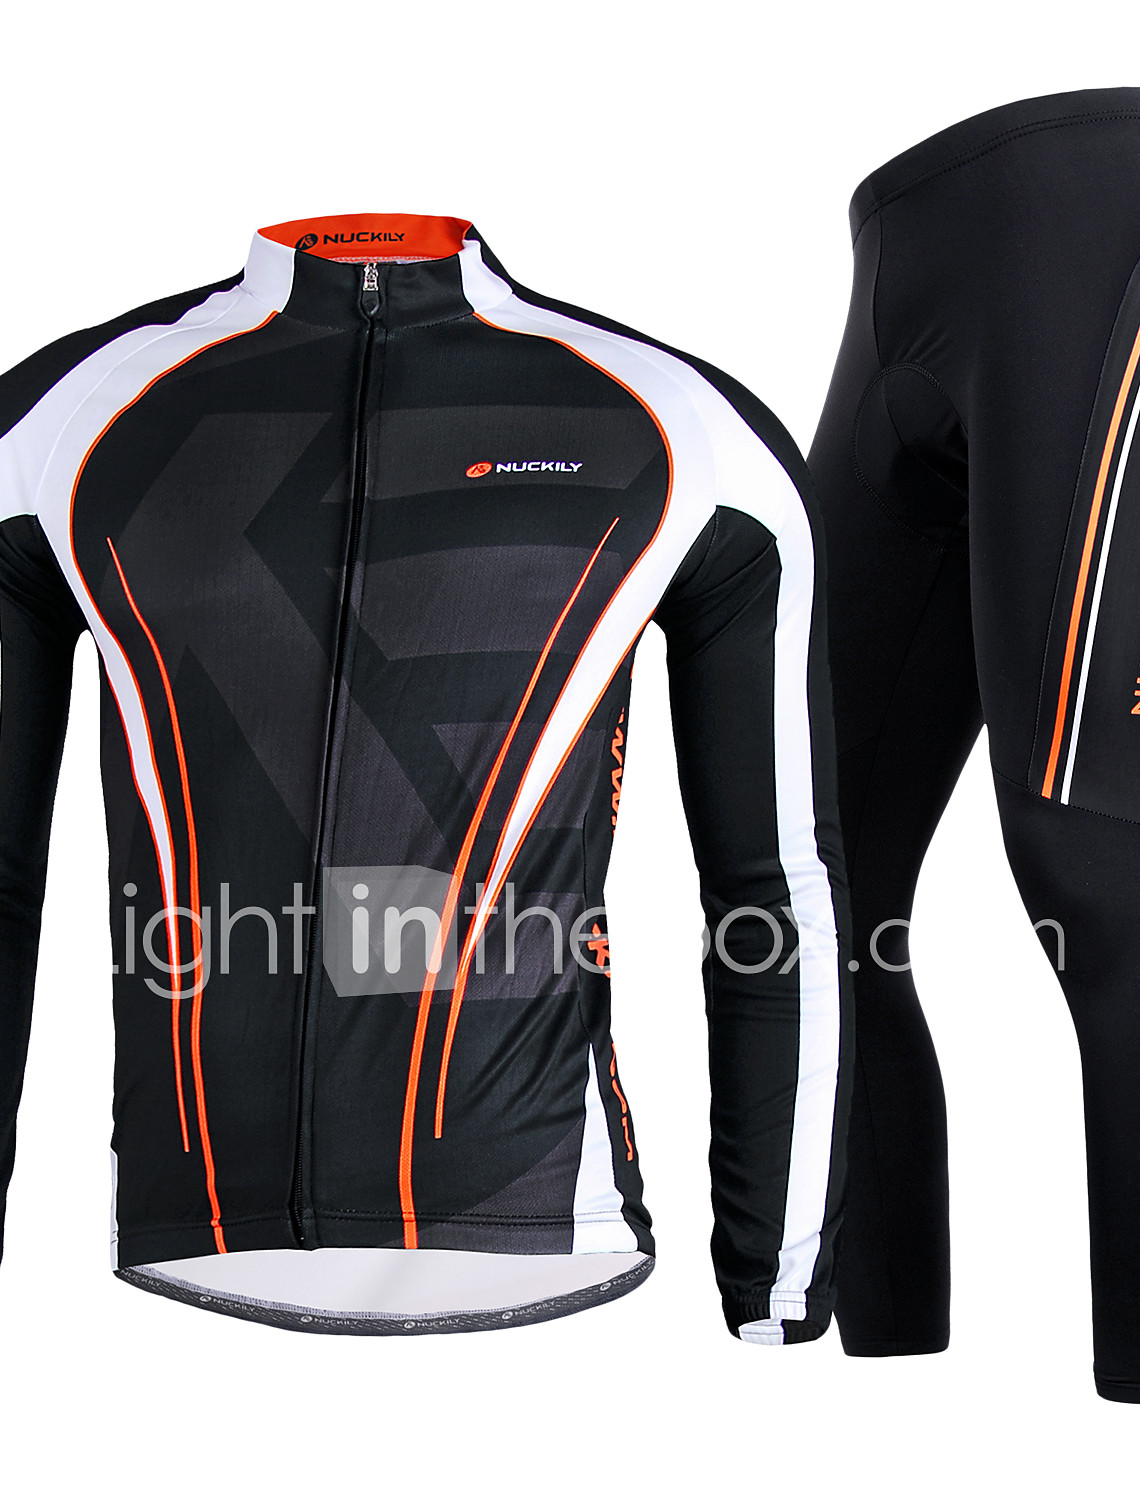 Nuckily Men s Long Sleeve Cycling Jersey with Tights - Black Bike Clothing  Suit 62076b73a